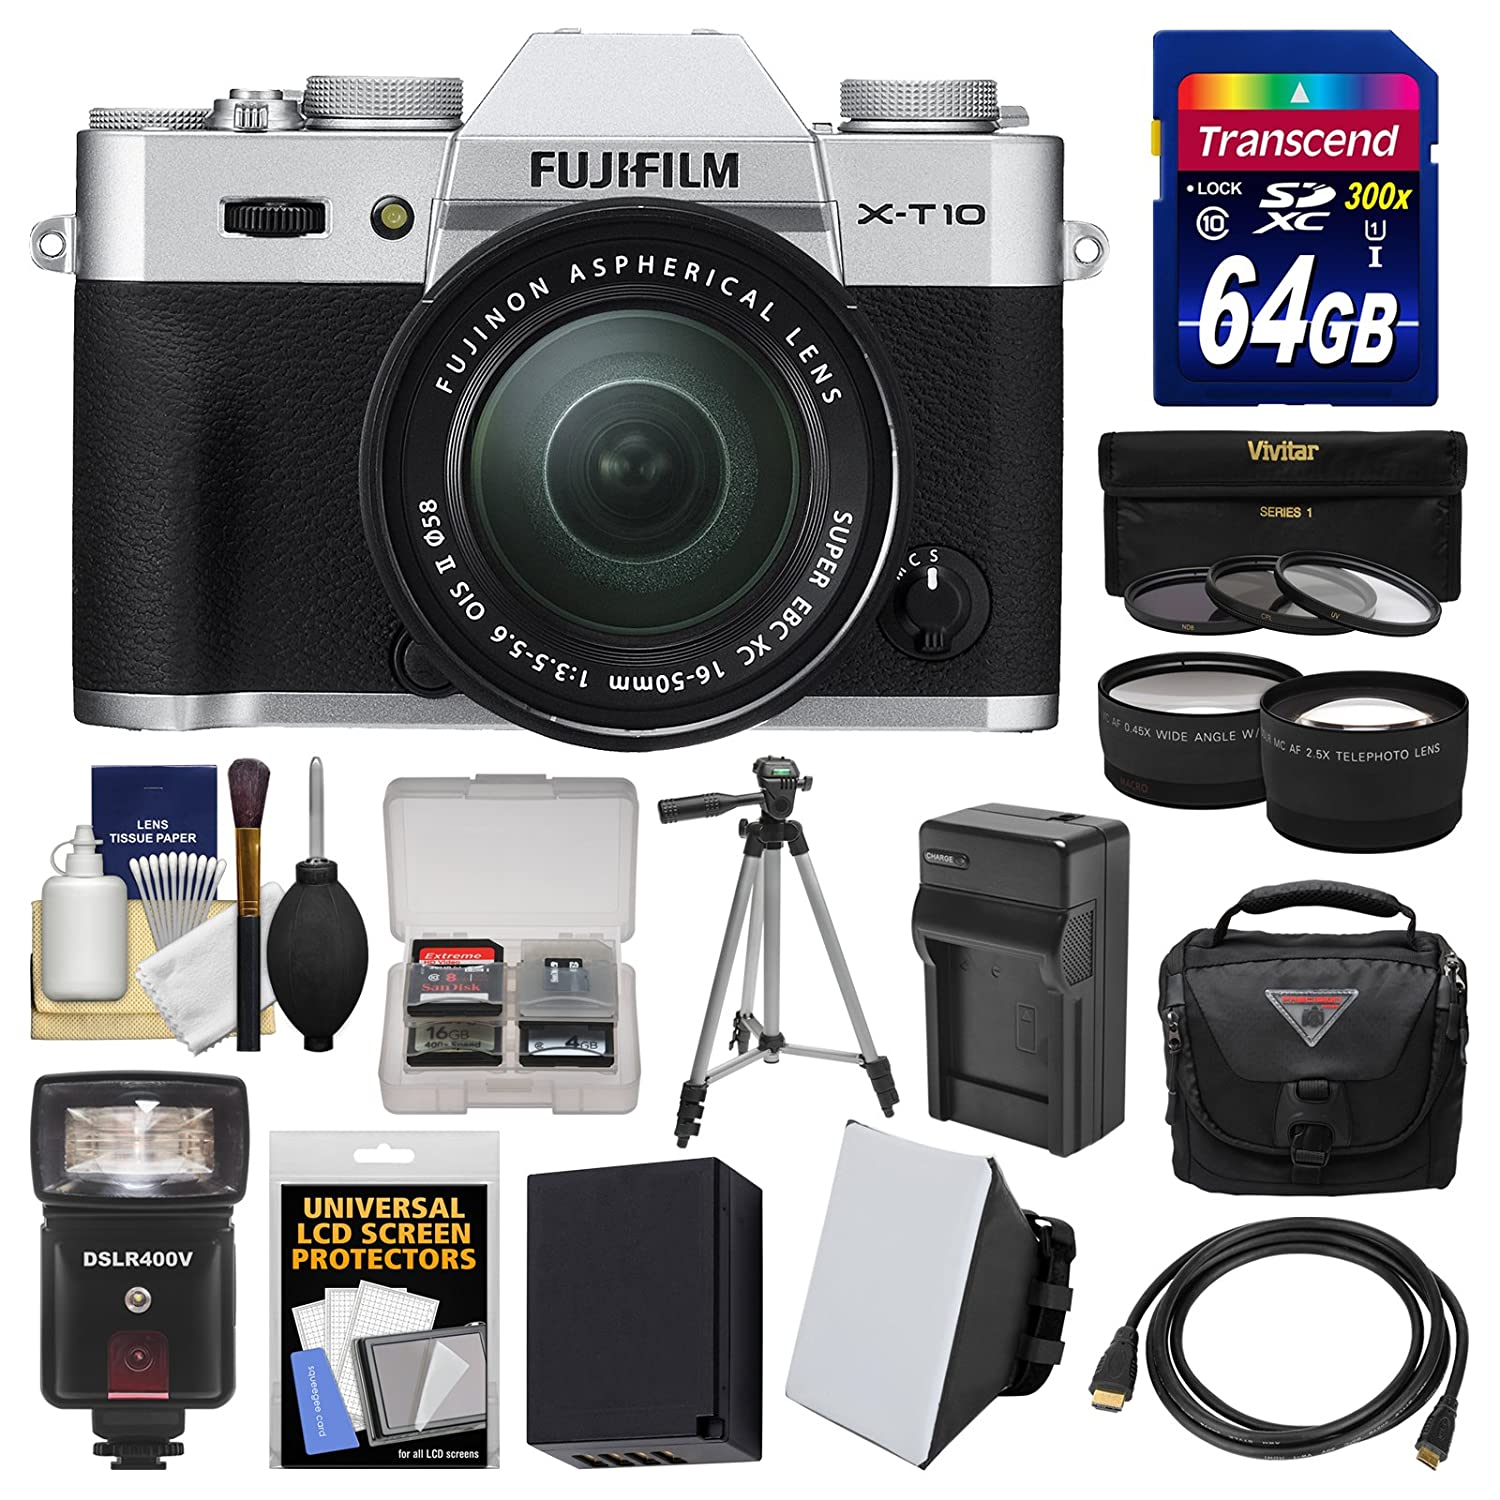 Fujifilm X-T10 Digital Camera & 16-50mm II XC Lens (Silver) with 64GB Card + Case + Flash + Battery & Charger + Tripod + Tele/Wide Lens Kit